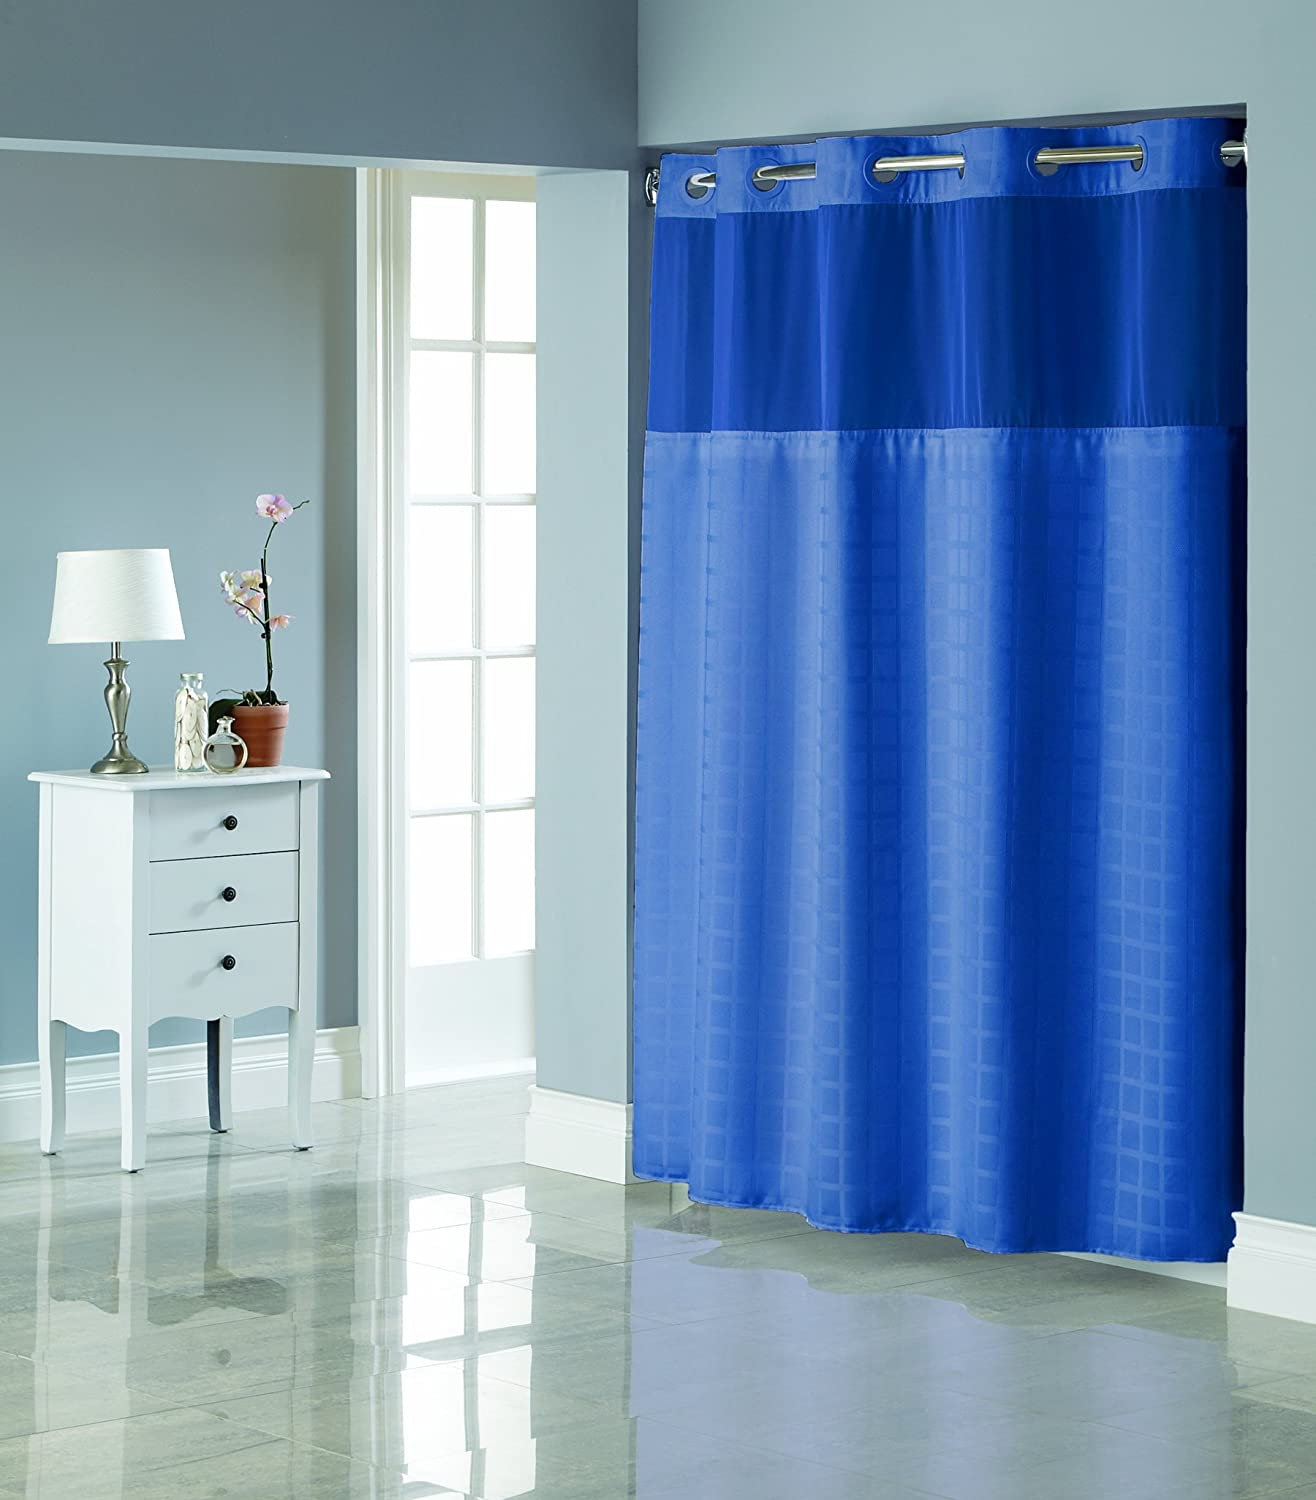 Hookless shower curtain with snap liner - Amazon Com Hookless Rbh27my919 Square Tile Jacquard Shower Curtain With Snap In Fabric Liner Moonlight Blue Home Kitchen